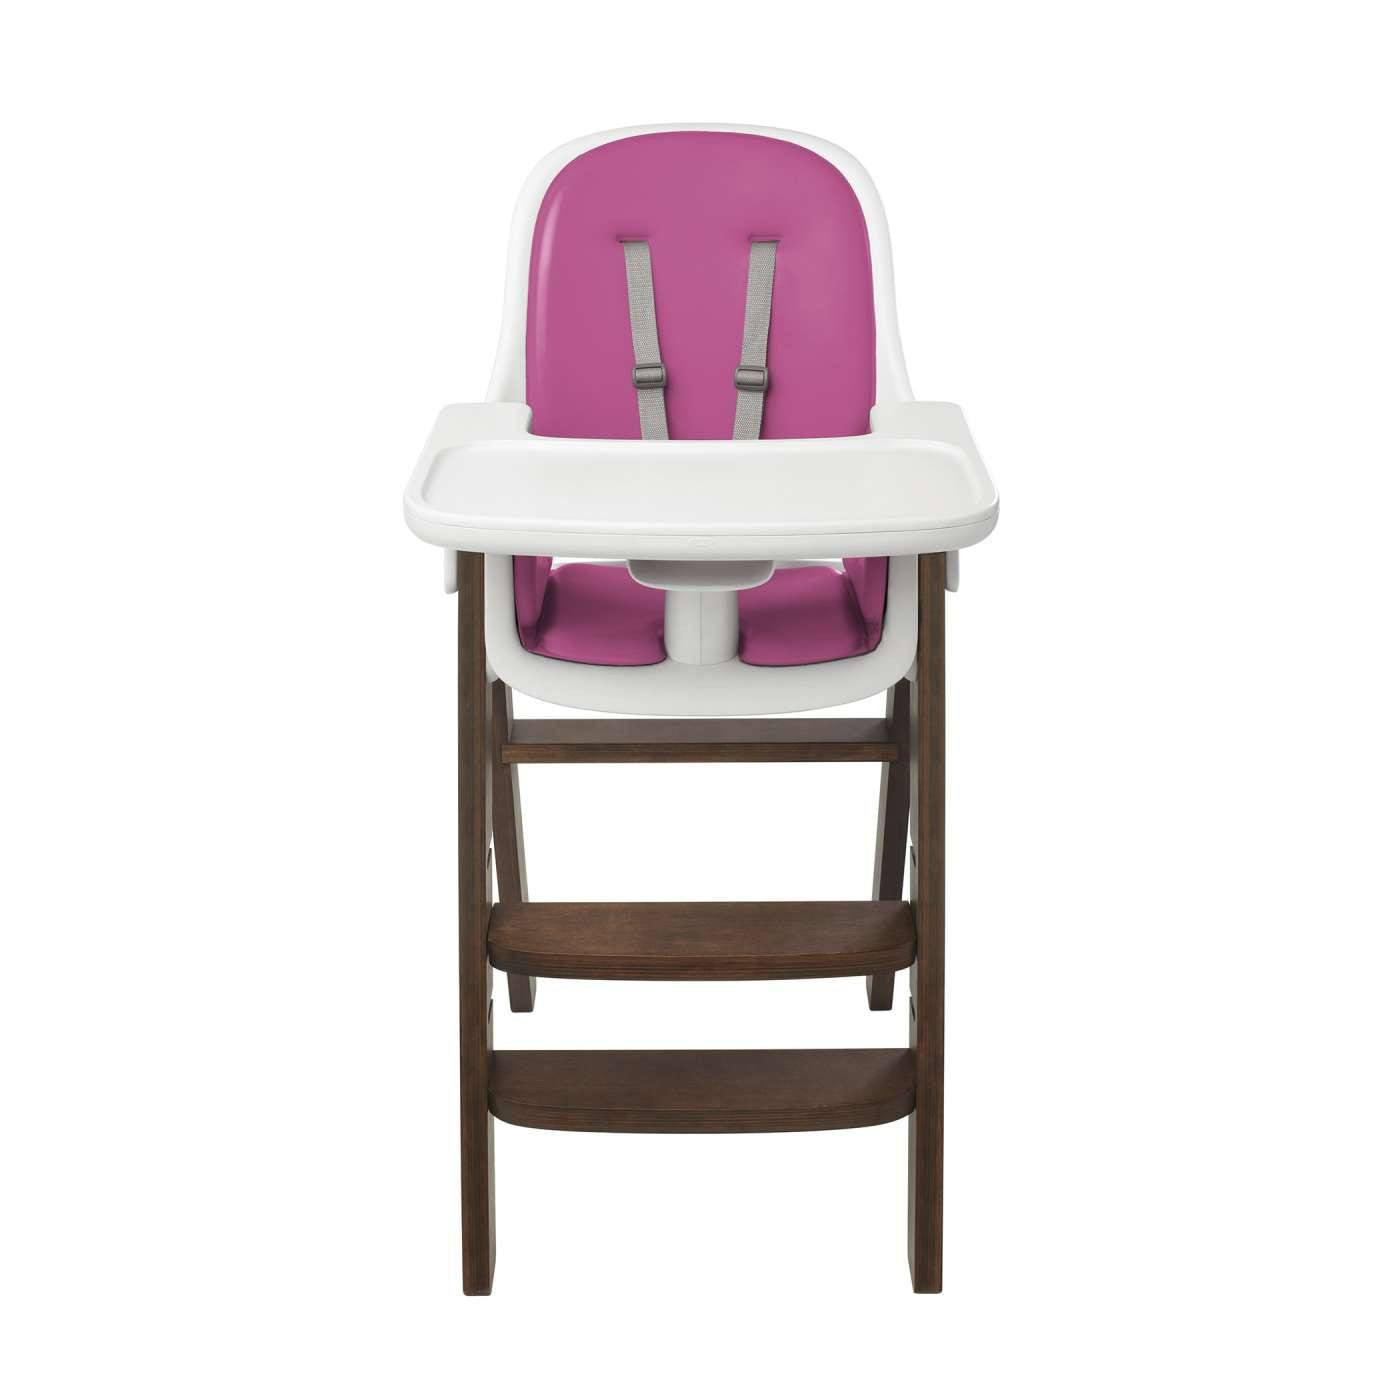 OXO OXO Tot Sprout Highchair - fawn&forest